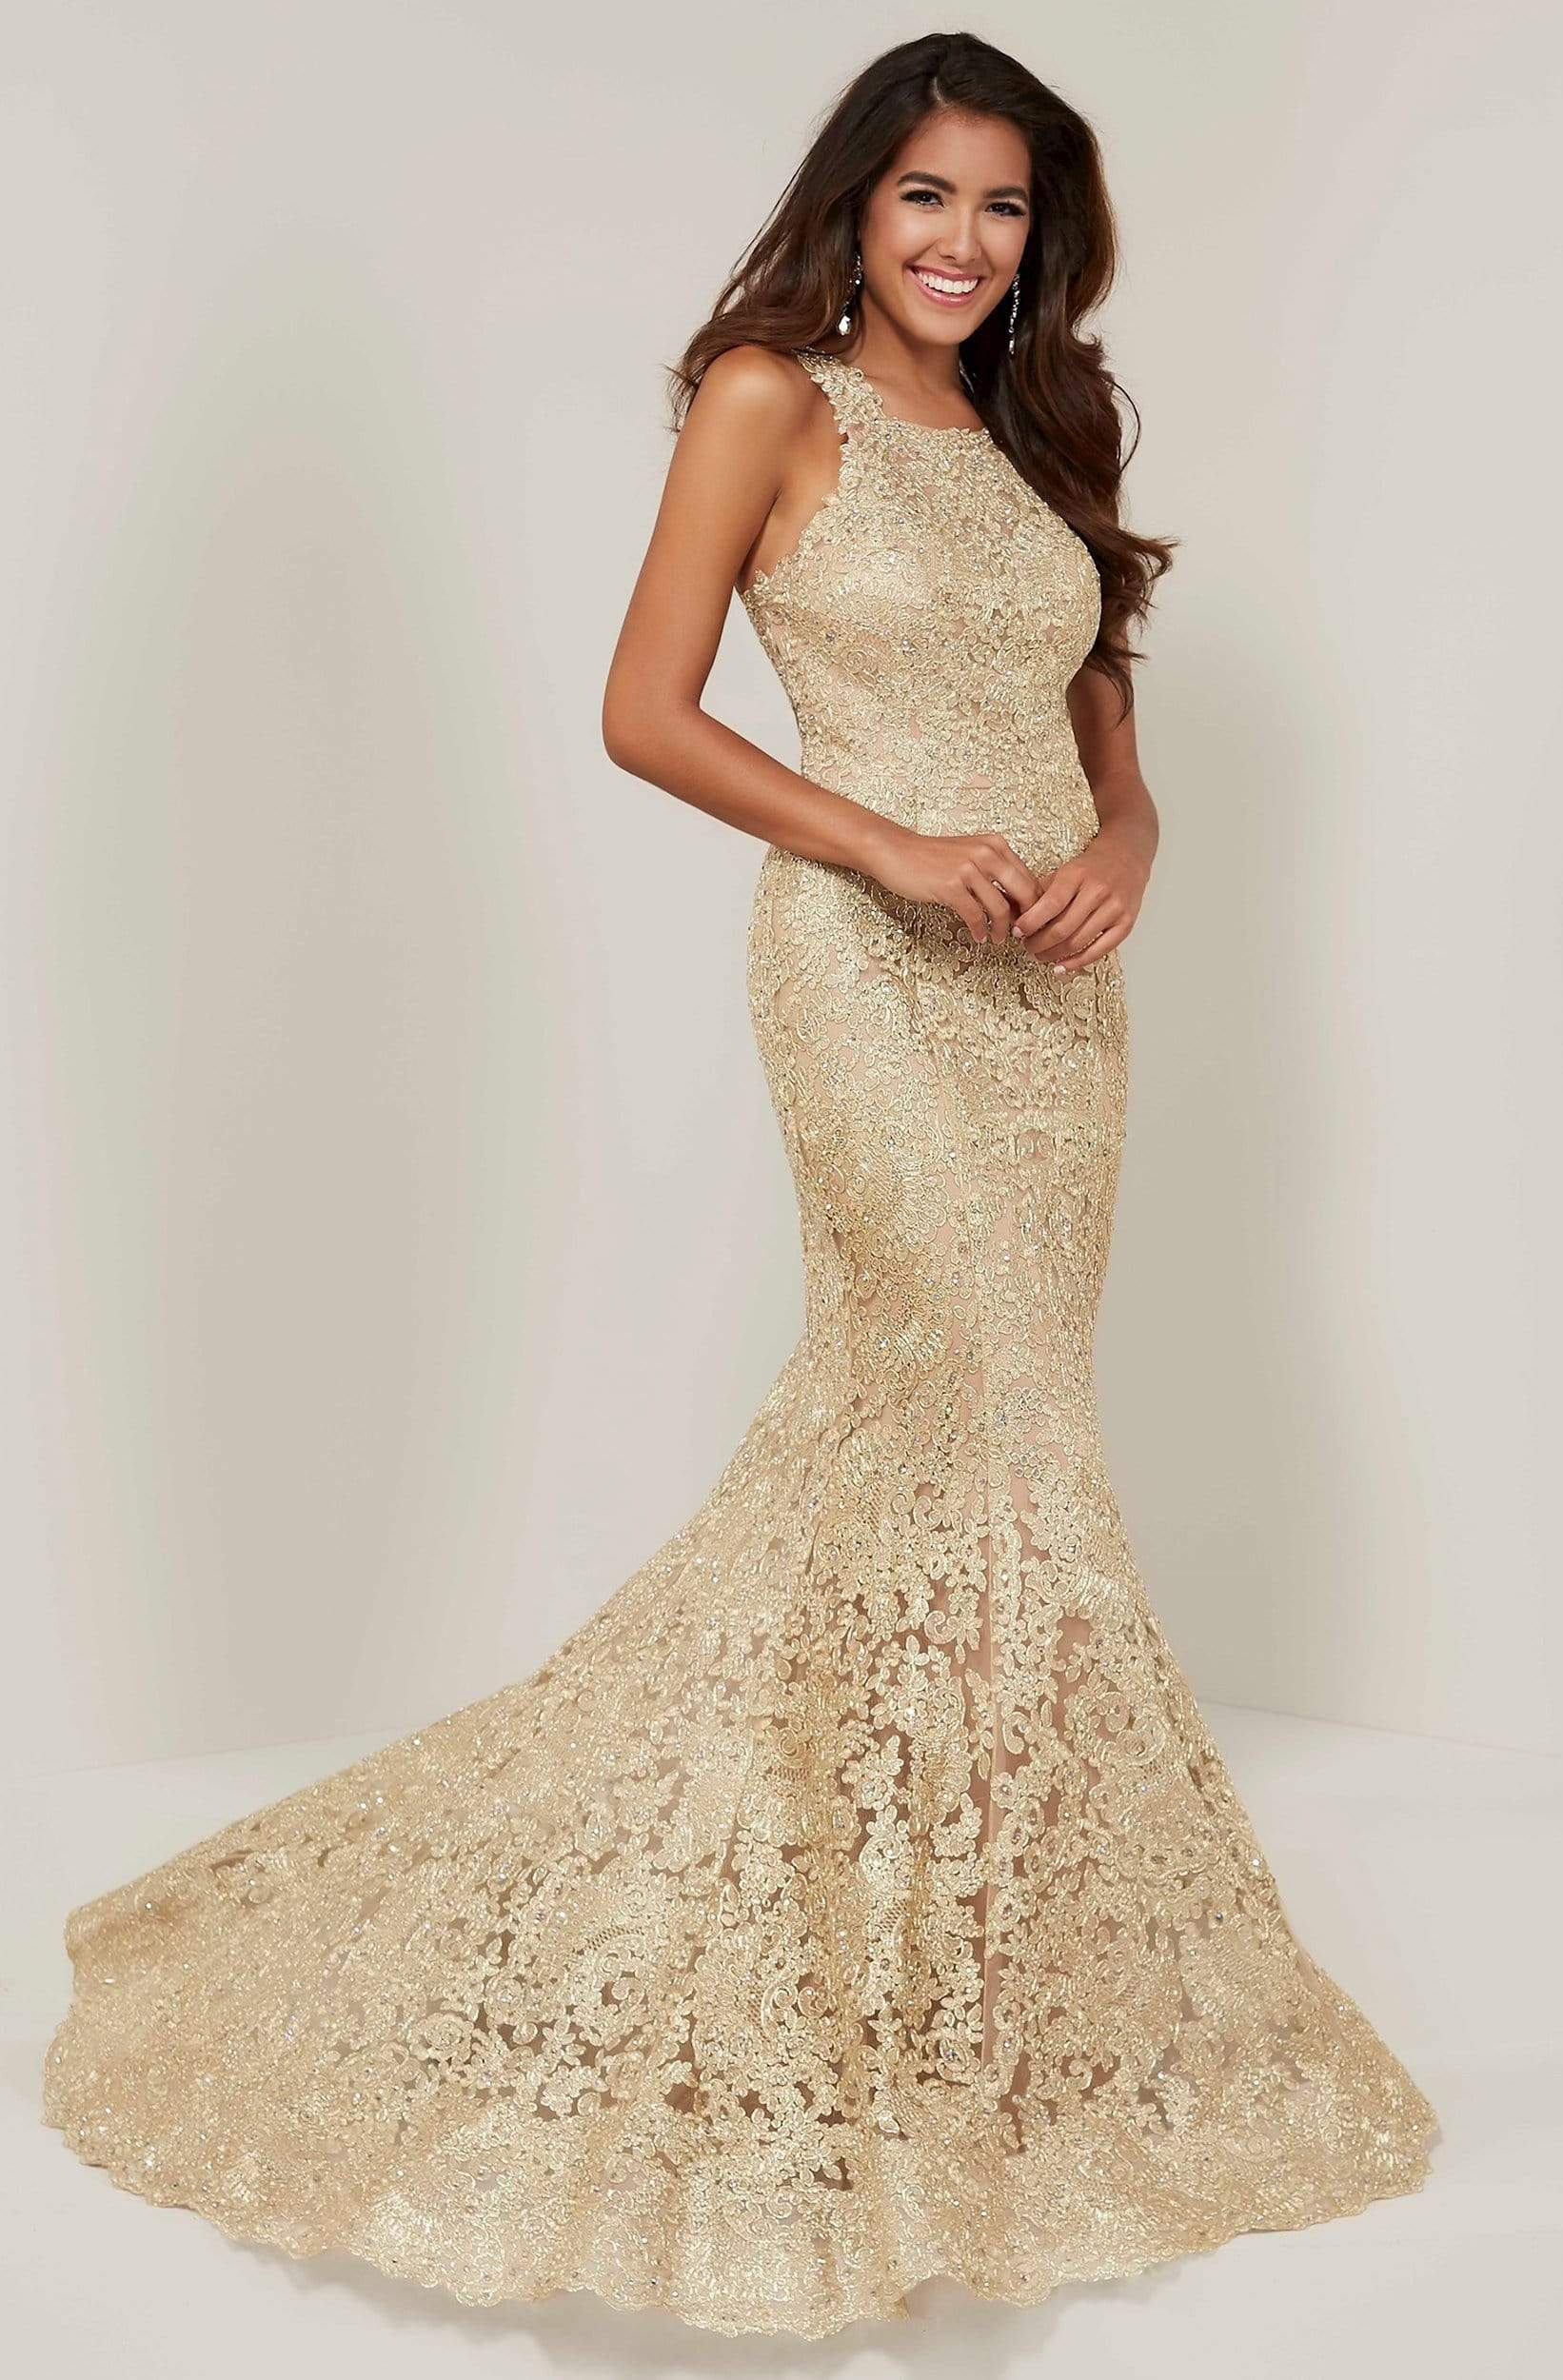 Tiffany Designs - 16329 Metallic Embroidered Halter Mermaid Dress from Tiffany Designs